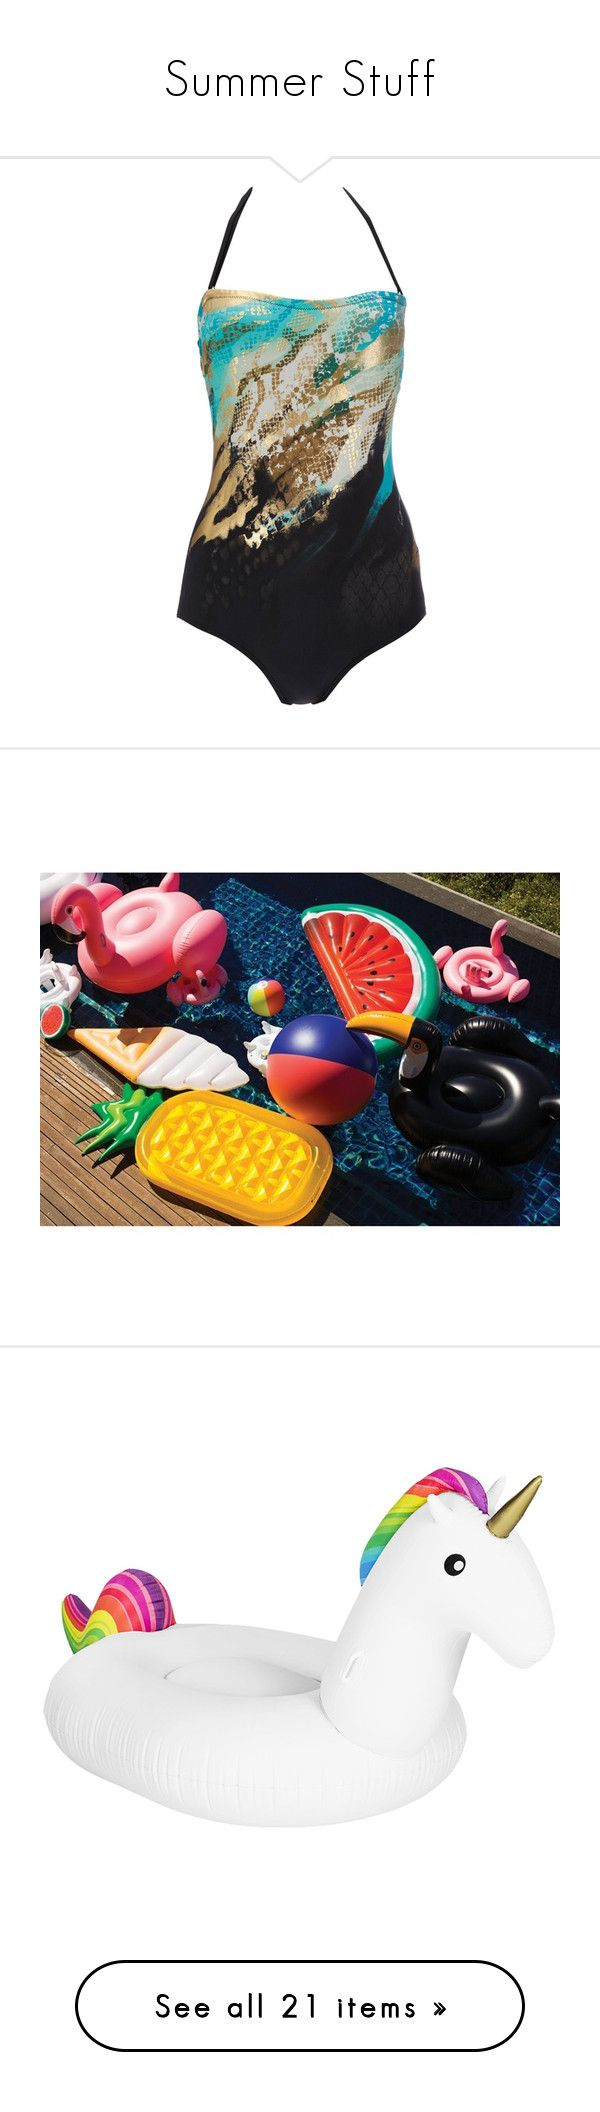 """""""Summer Stuff"""" by monica-cookson ❤ liked on Polyvore featuring swimwear, one-piece swimsuits, swimsuit, black, strapless bathing suits, halter neck swimsuit, one piece tummy control swimsuit, tummy control bathing suits, tummy control swimwear and float"""